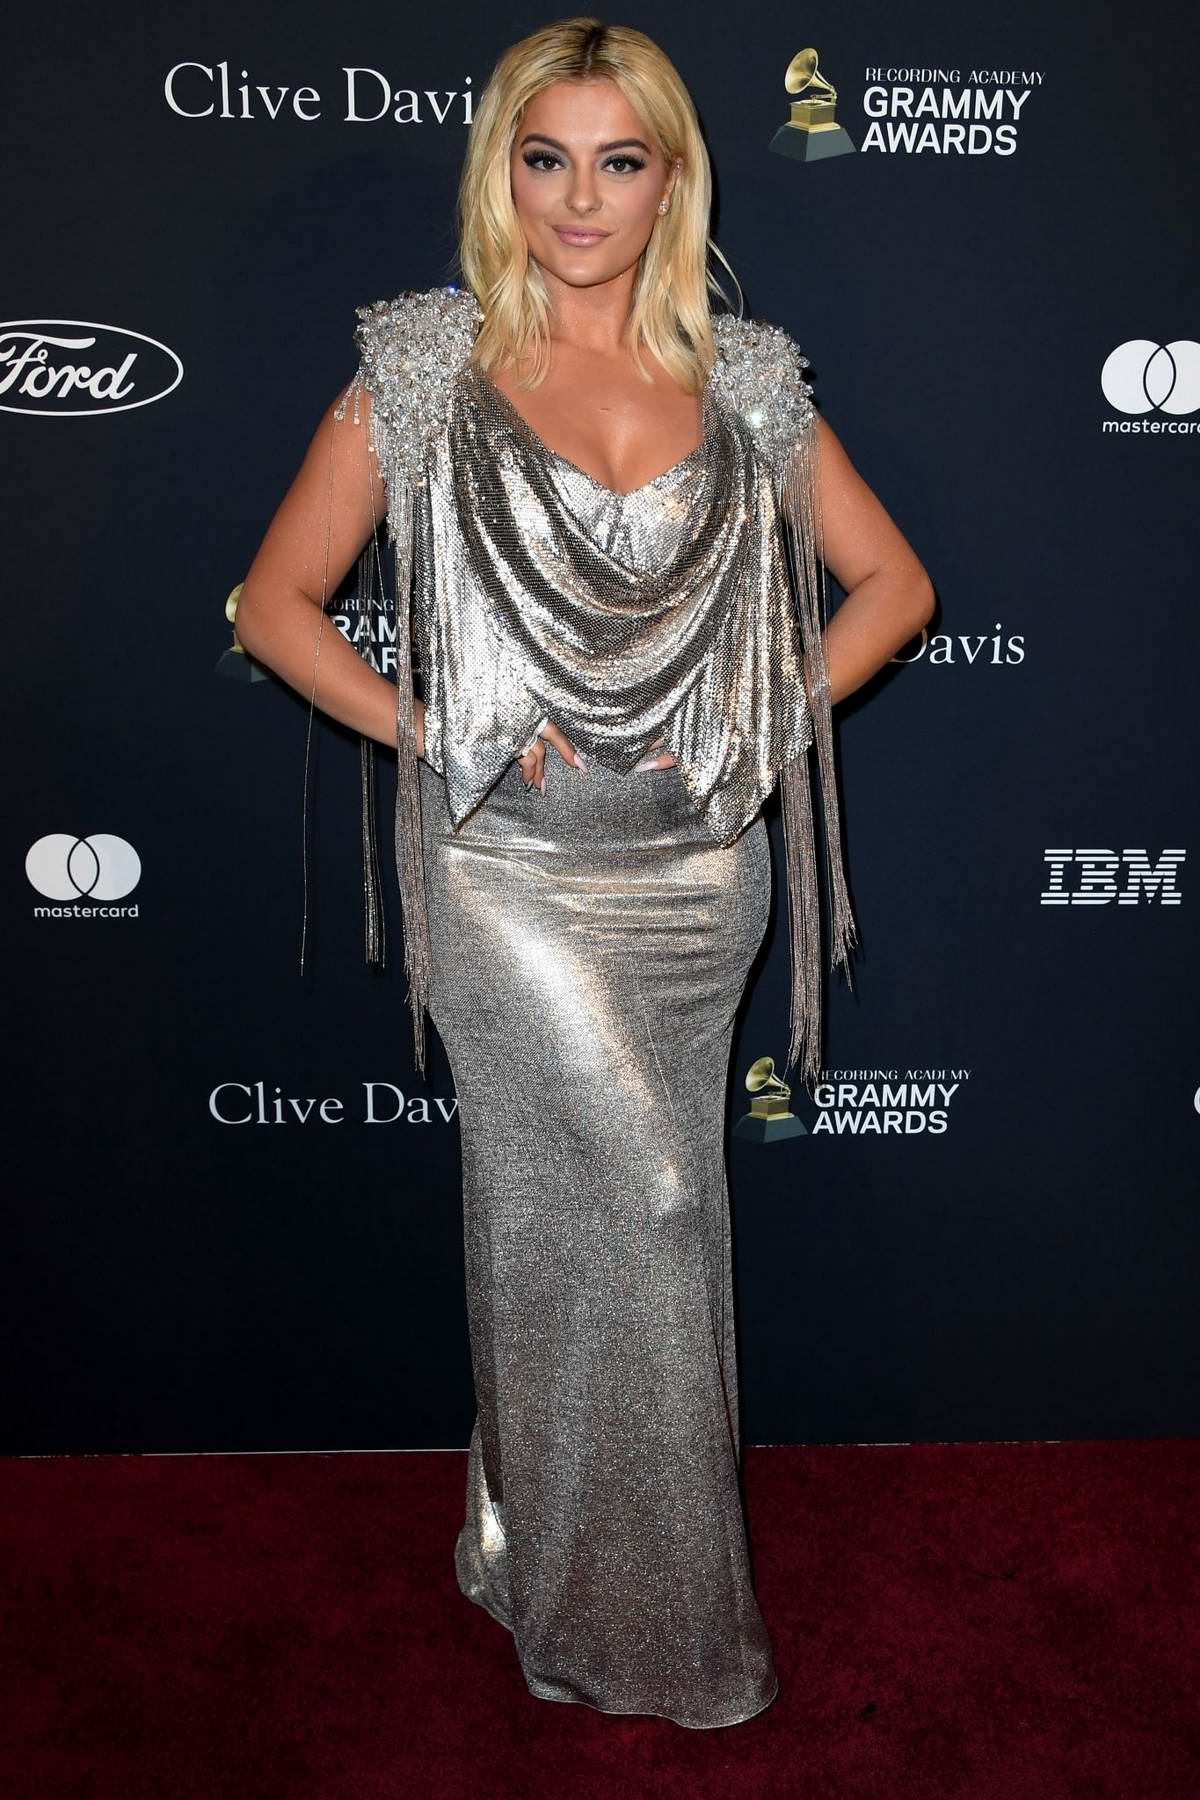 Bebe Rexha attends the Recording Academy and Clive Davis Pre-Grammy Gala in Beverly Hills, California